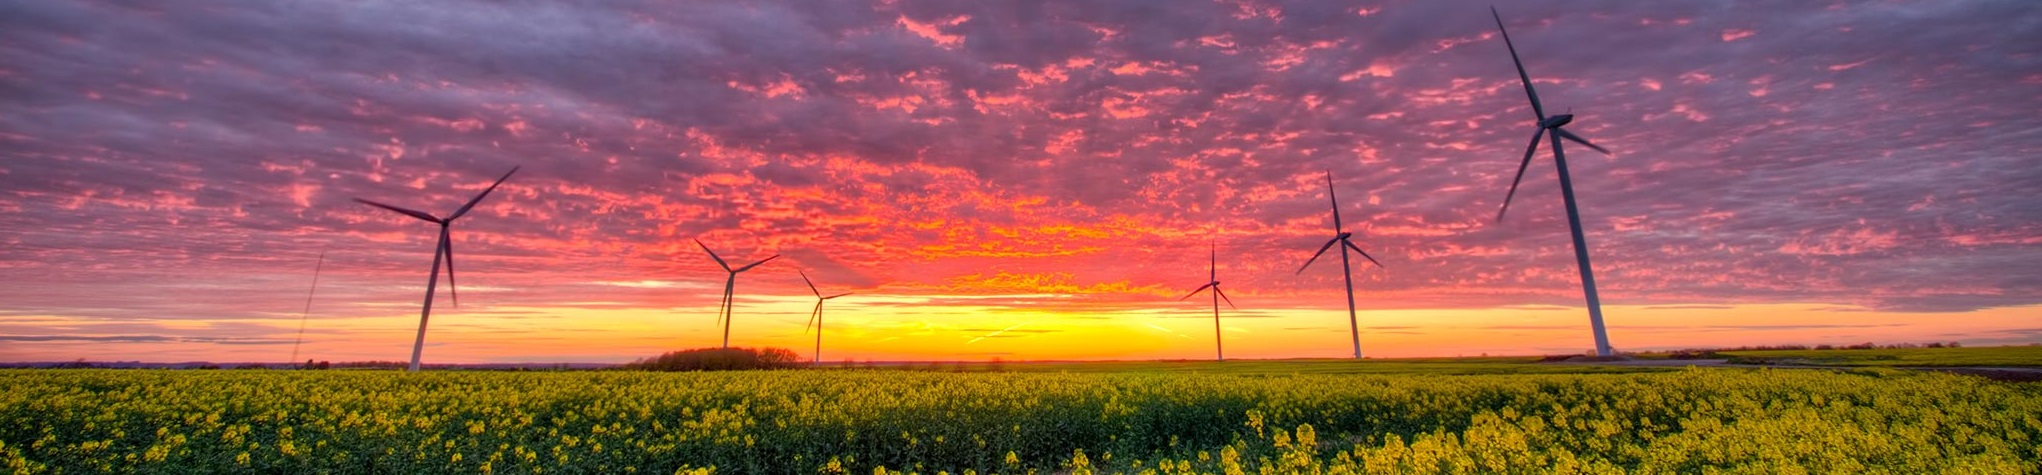 Sunset over a field with wind turbines.